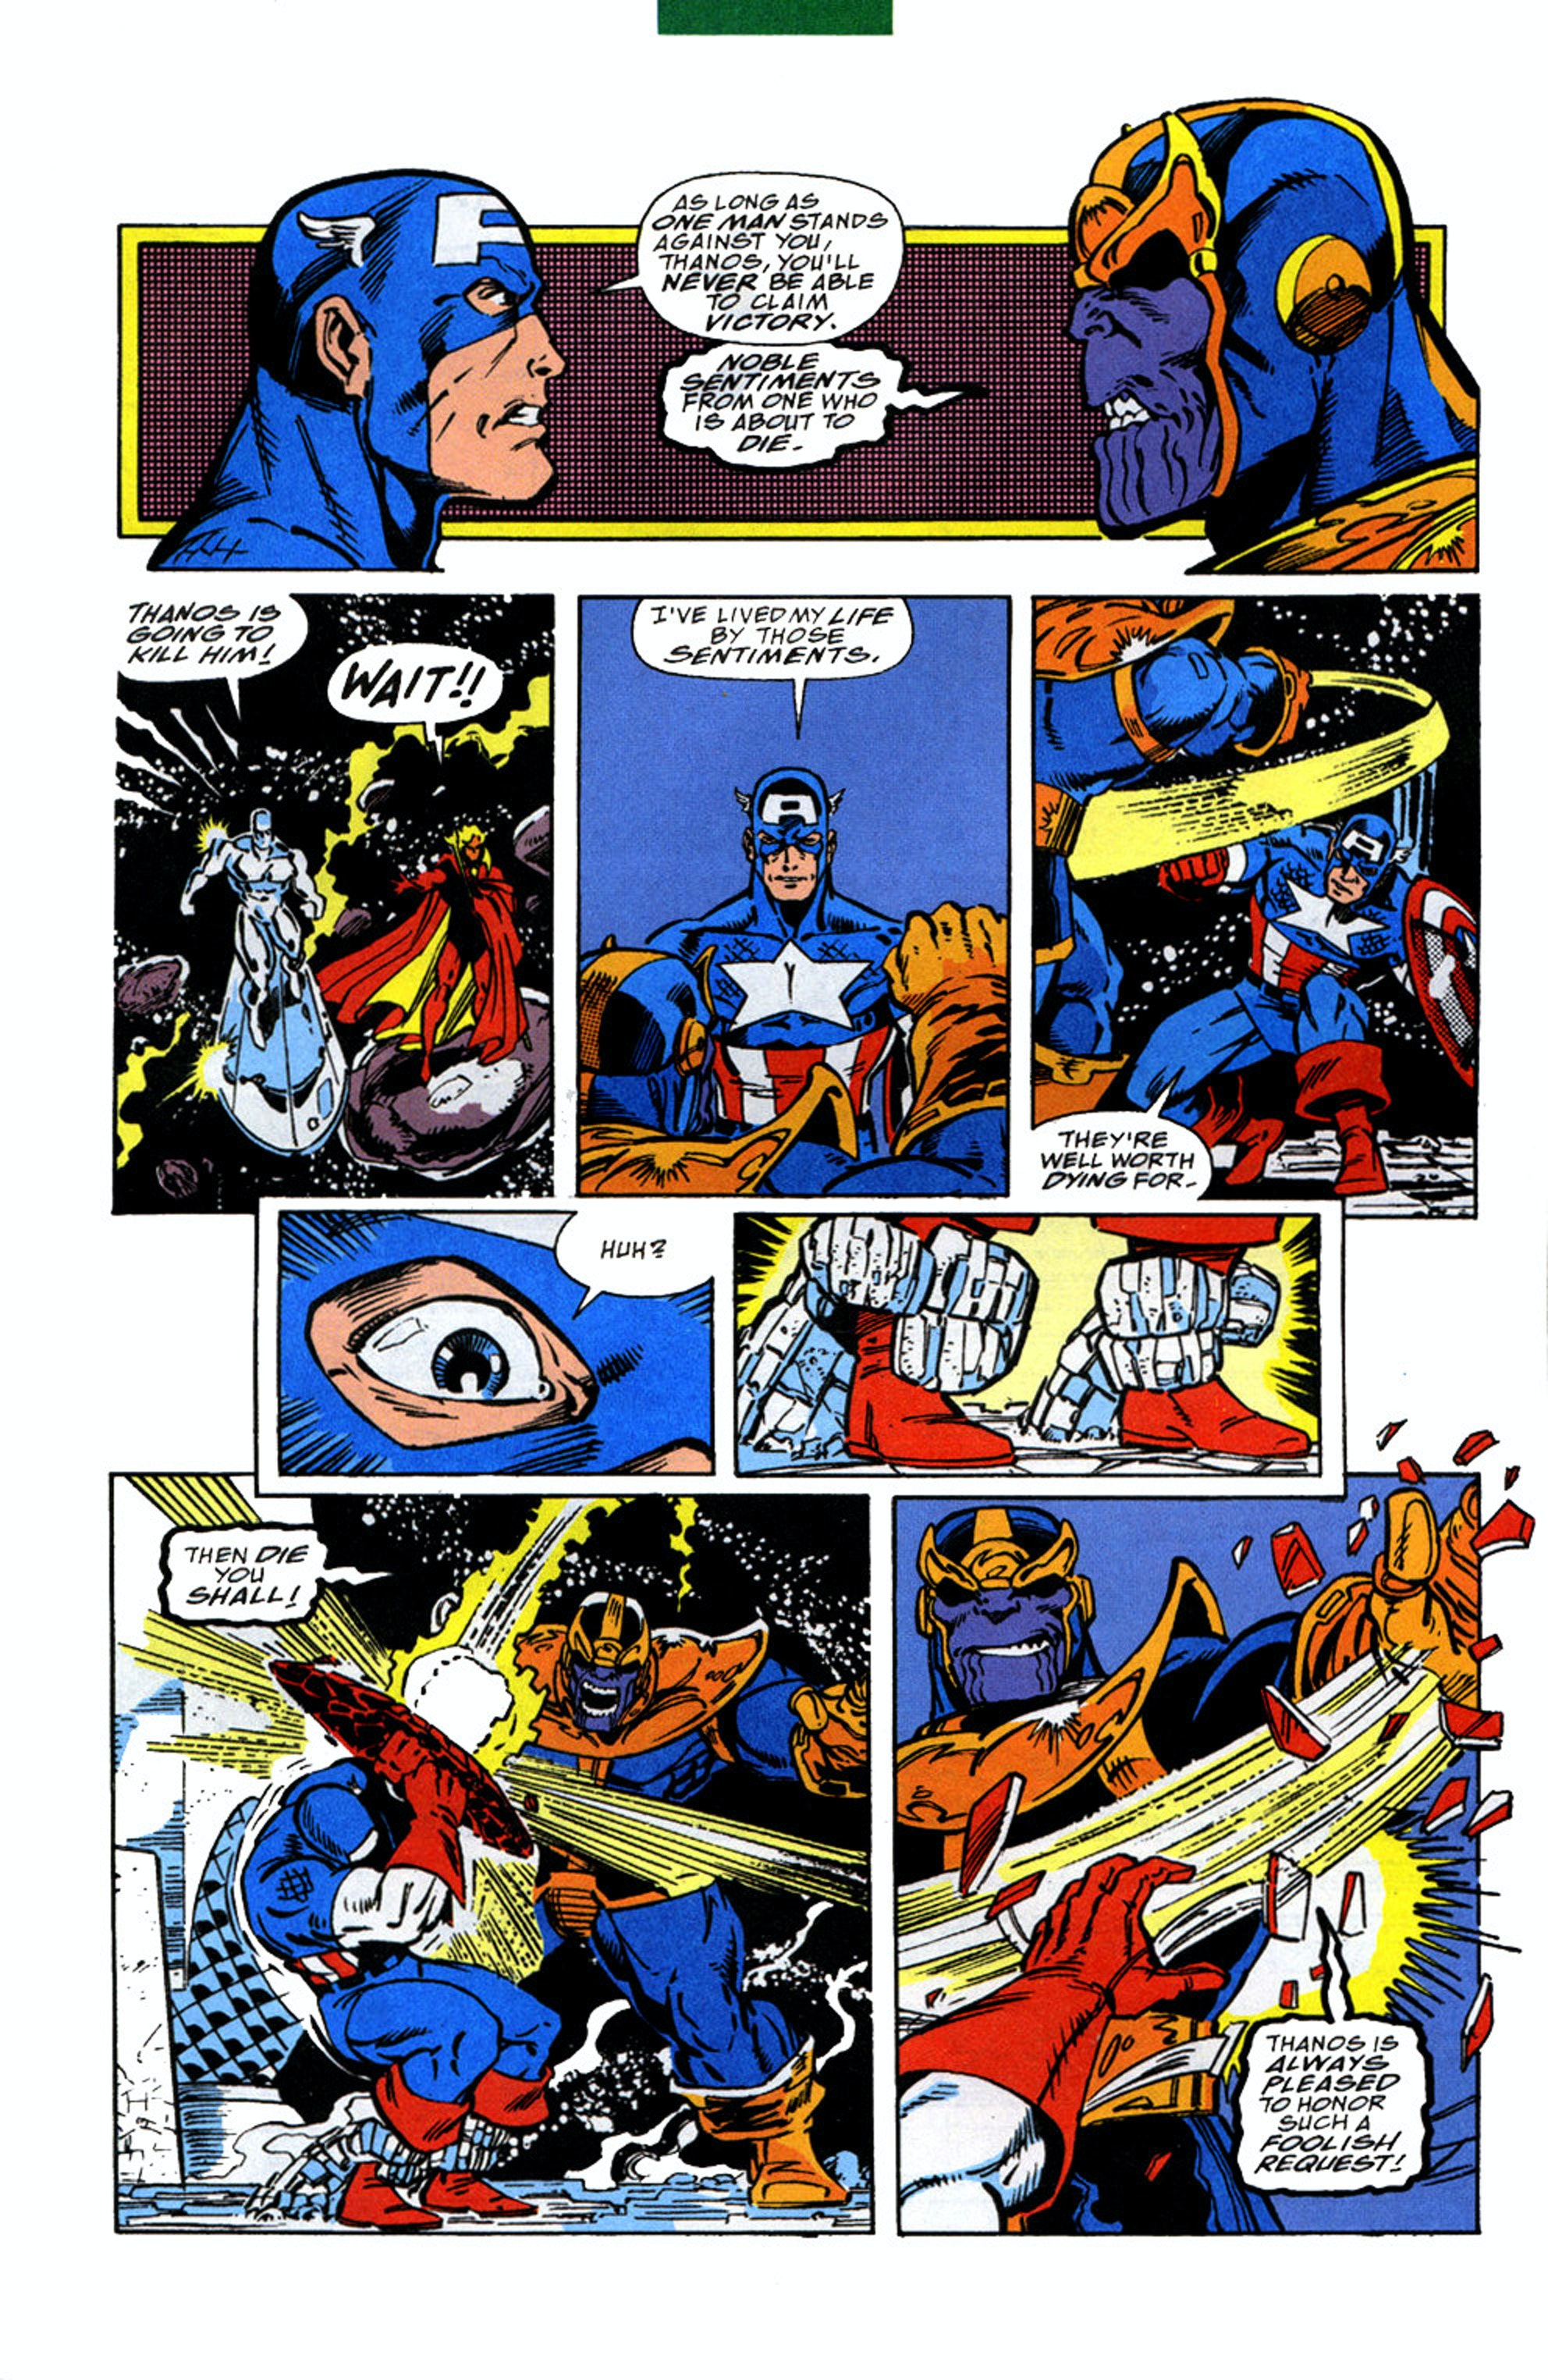 When Cap fought Thanos one-on-one in 'The Infinity Gauntlet' #4.